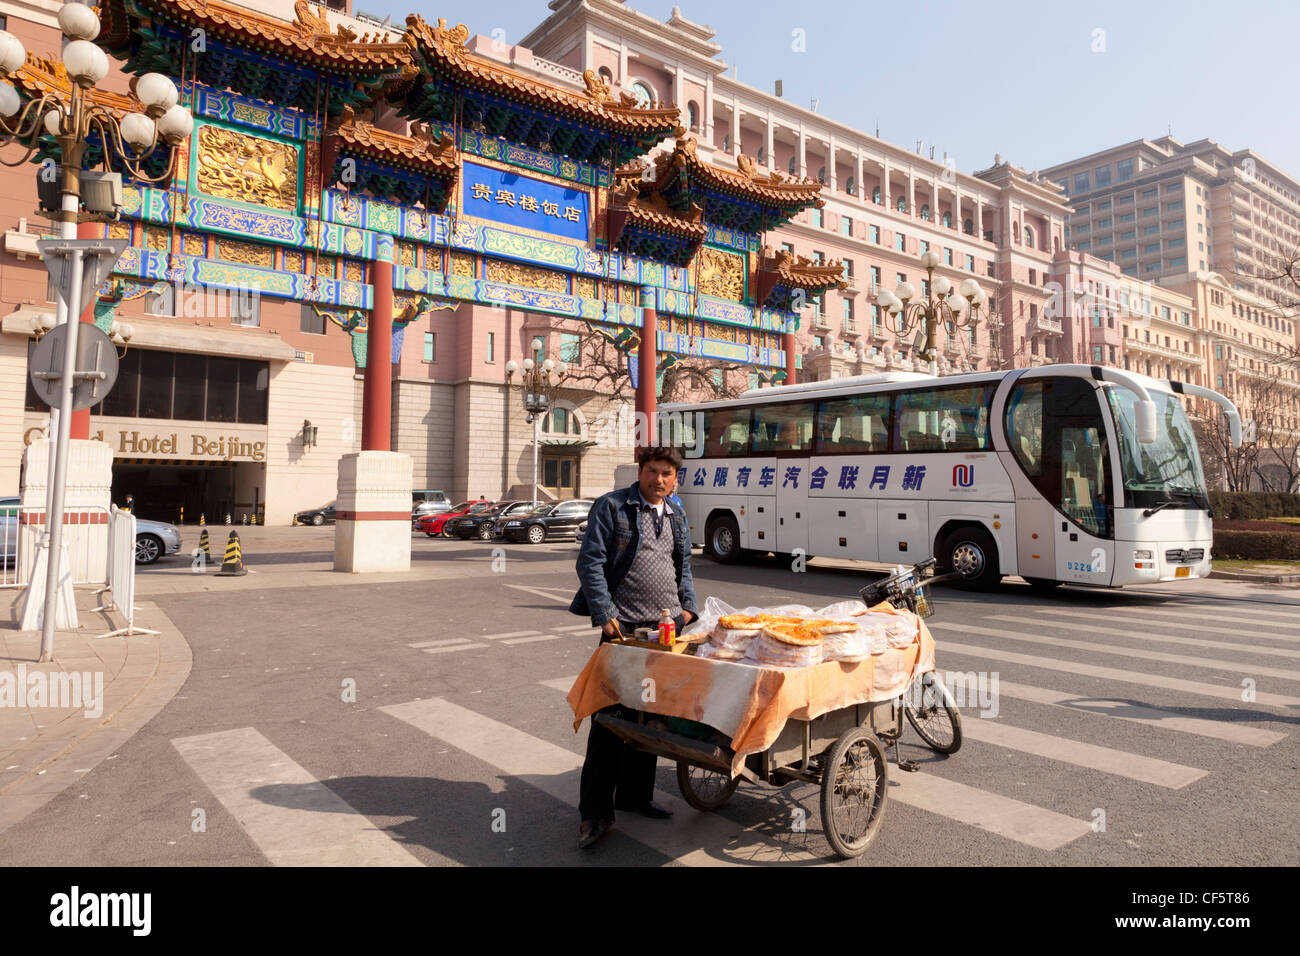 A street food vendor selling pizza outside the Grand Hotel, Chang'an Avenue, Beijing, China, tourist coach in - Stock Image